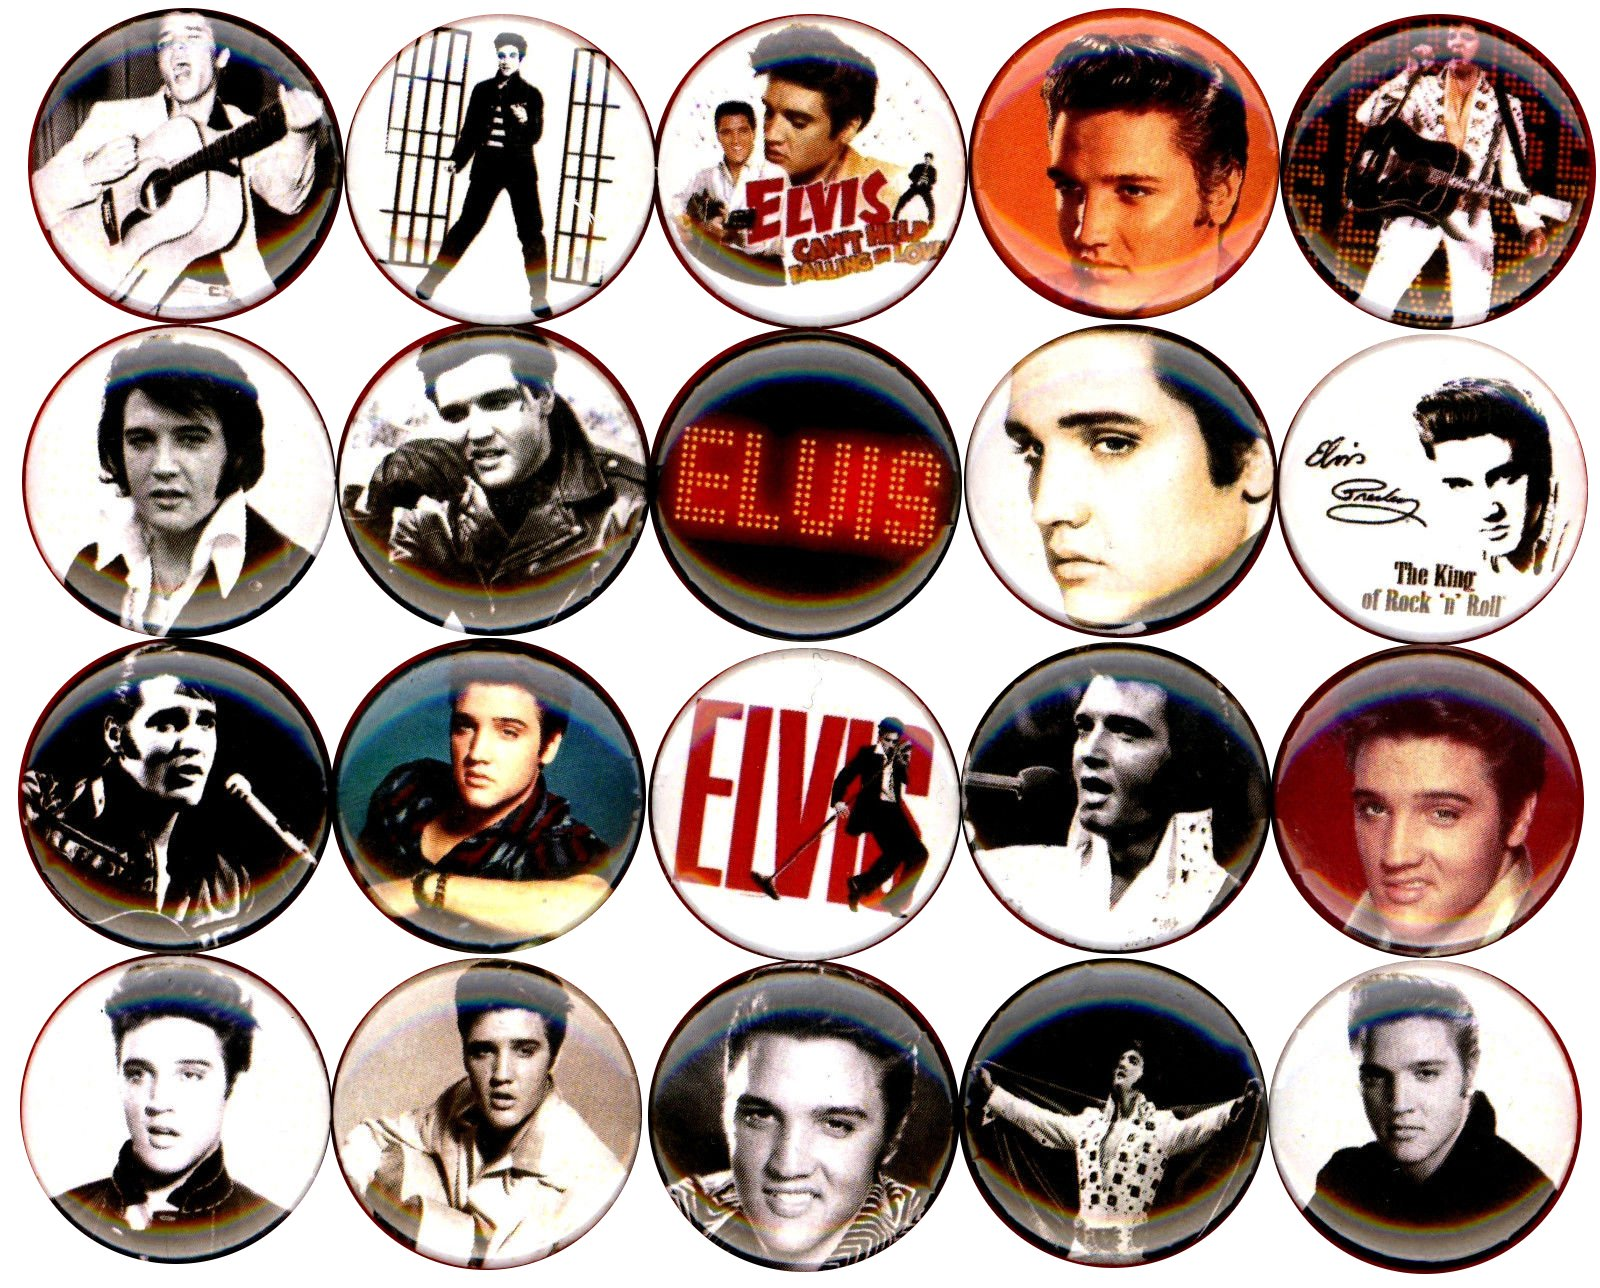 Elvis Presley x 20 1'' inch (25mm) NEW buttons pin badge logo king of rock and roll